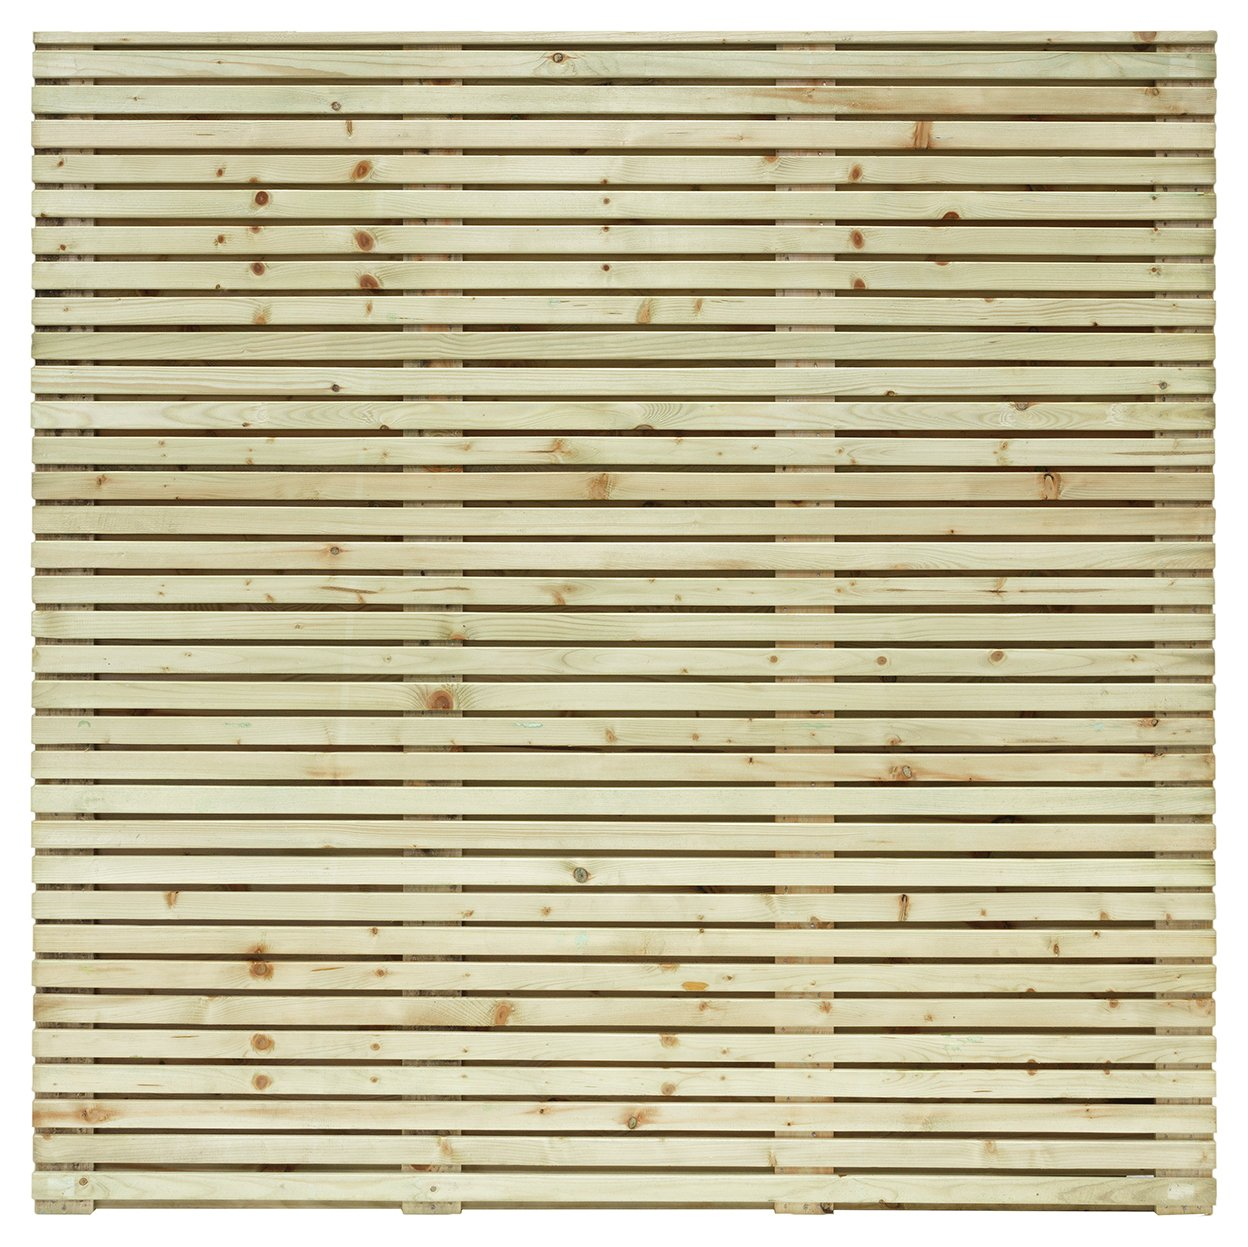 Grange Fencing 1.8m Contemporary Fence Panel - Pack of 5.